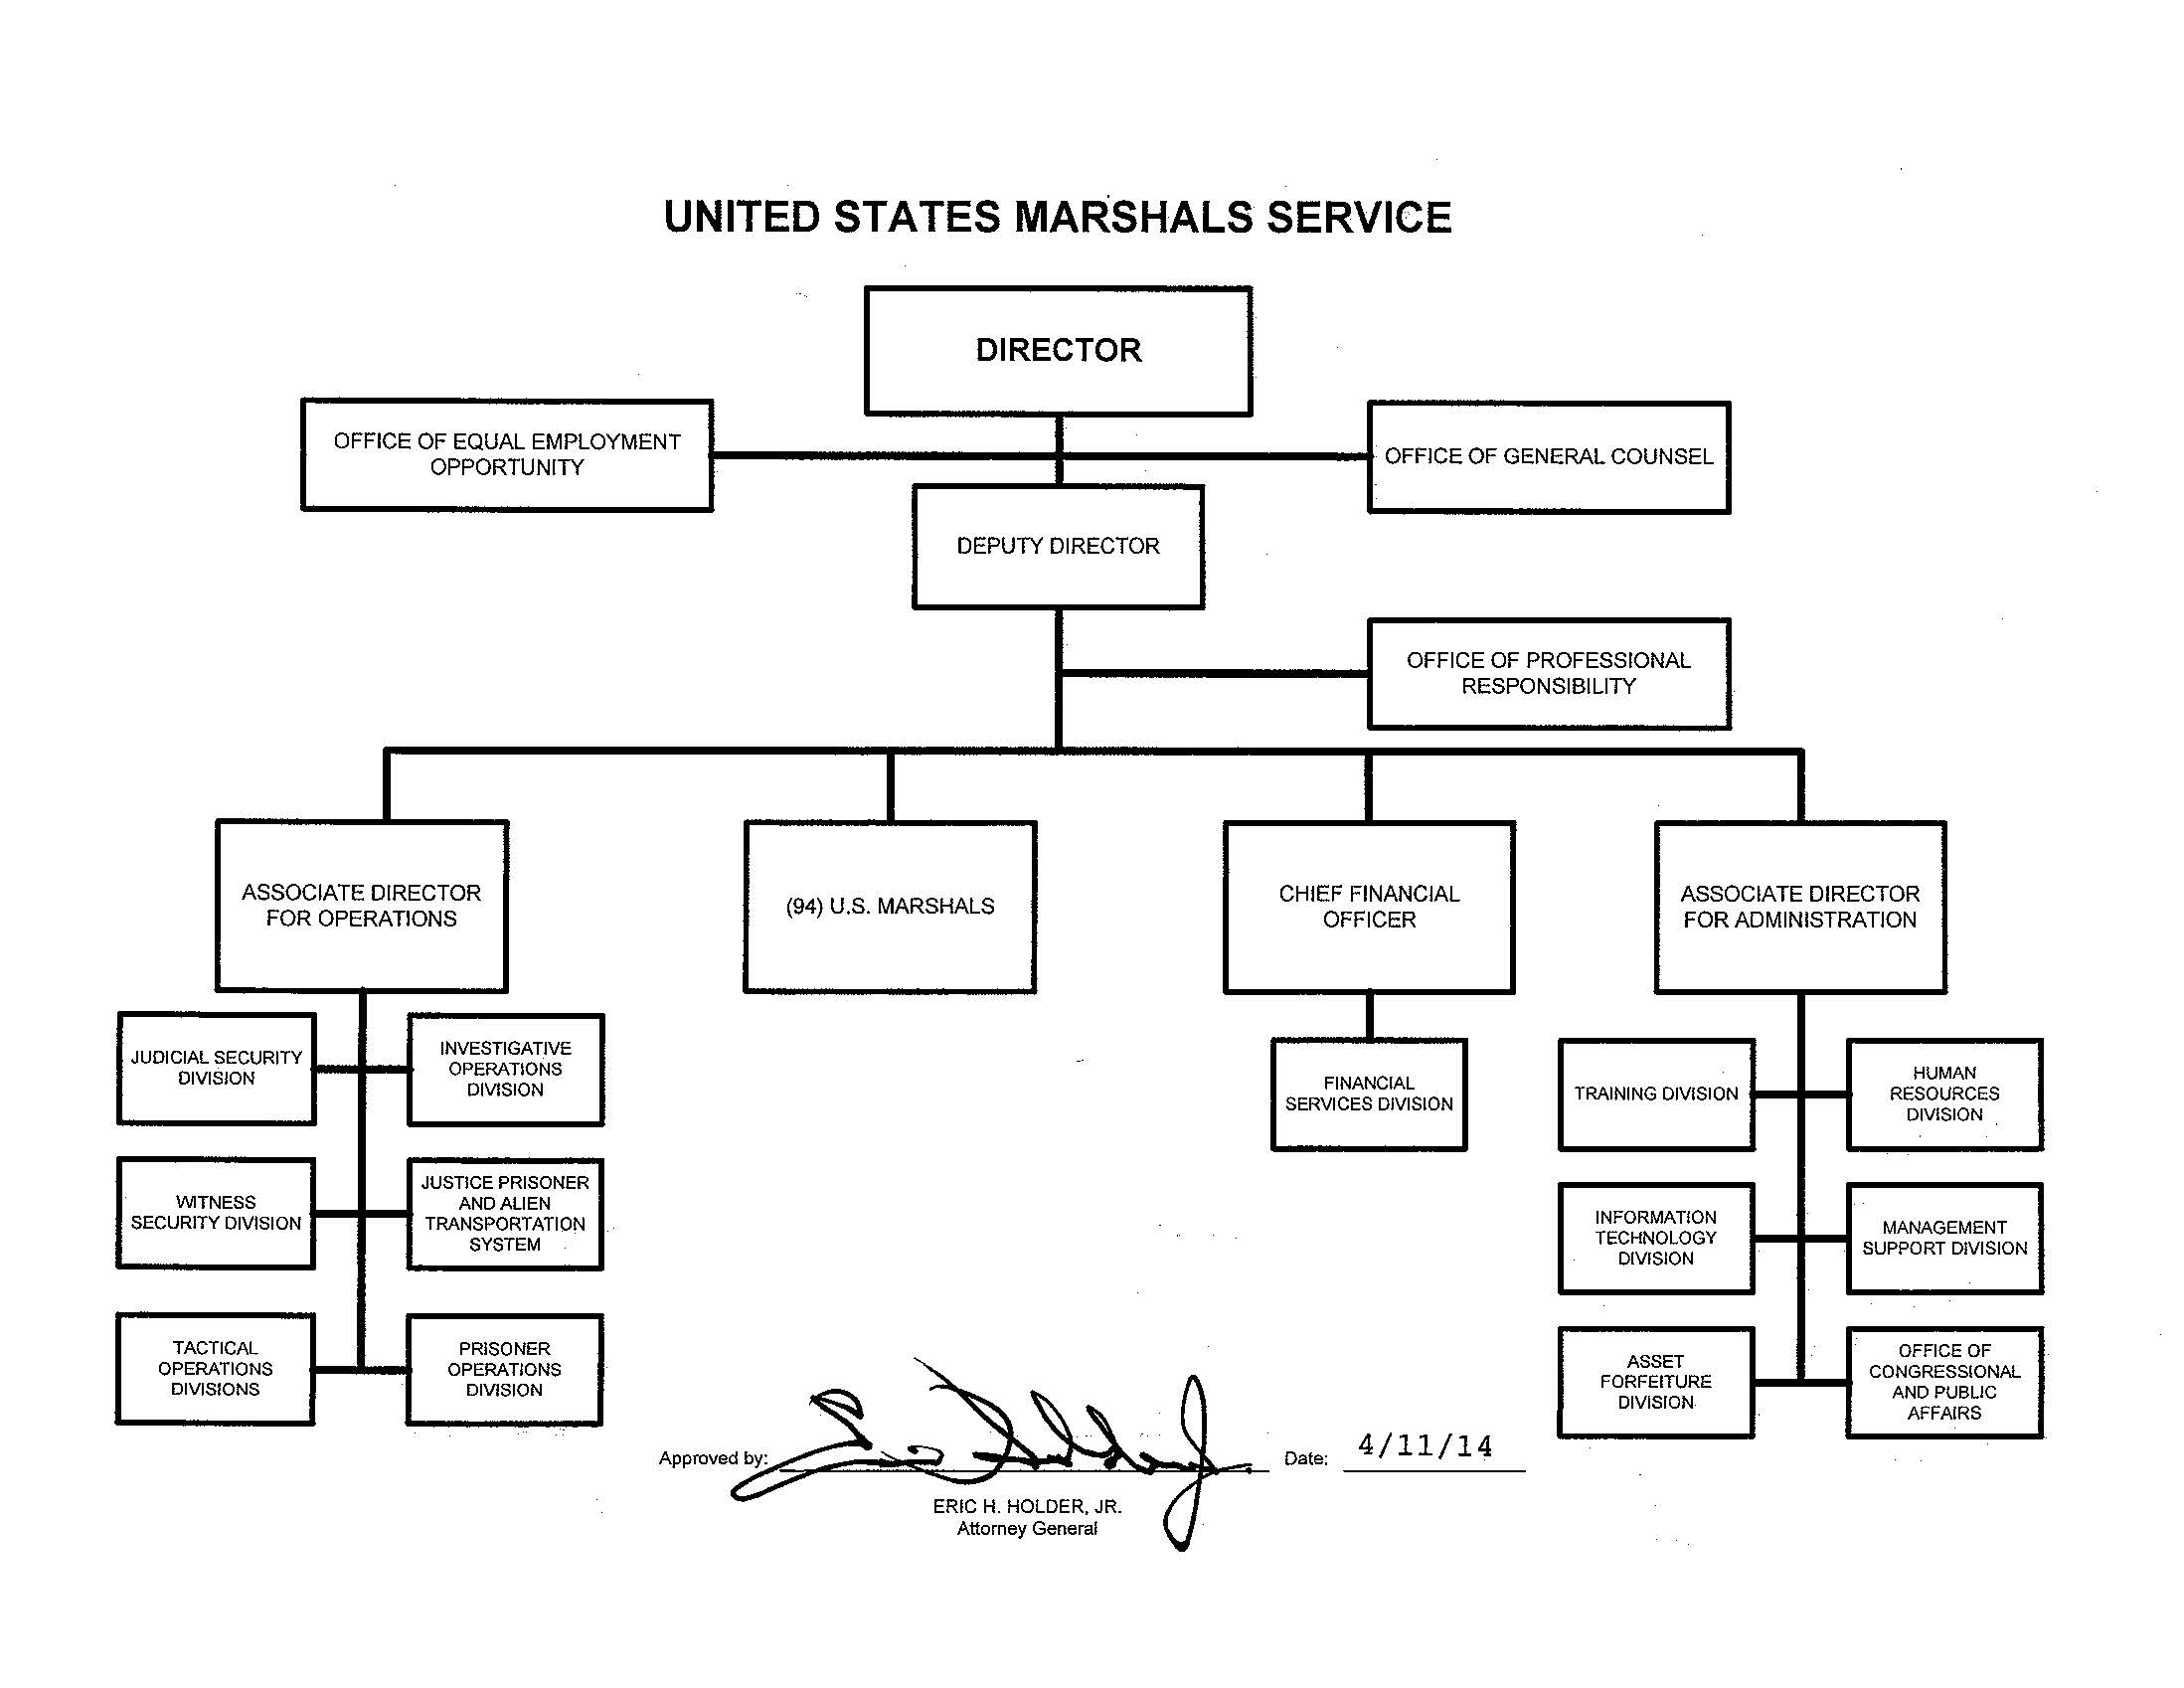 Organization mission and functions manual united states marshals us marshals service organizational chart nvjuhfo Gallery